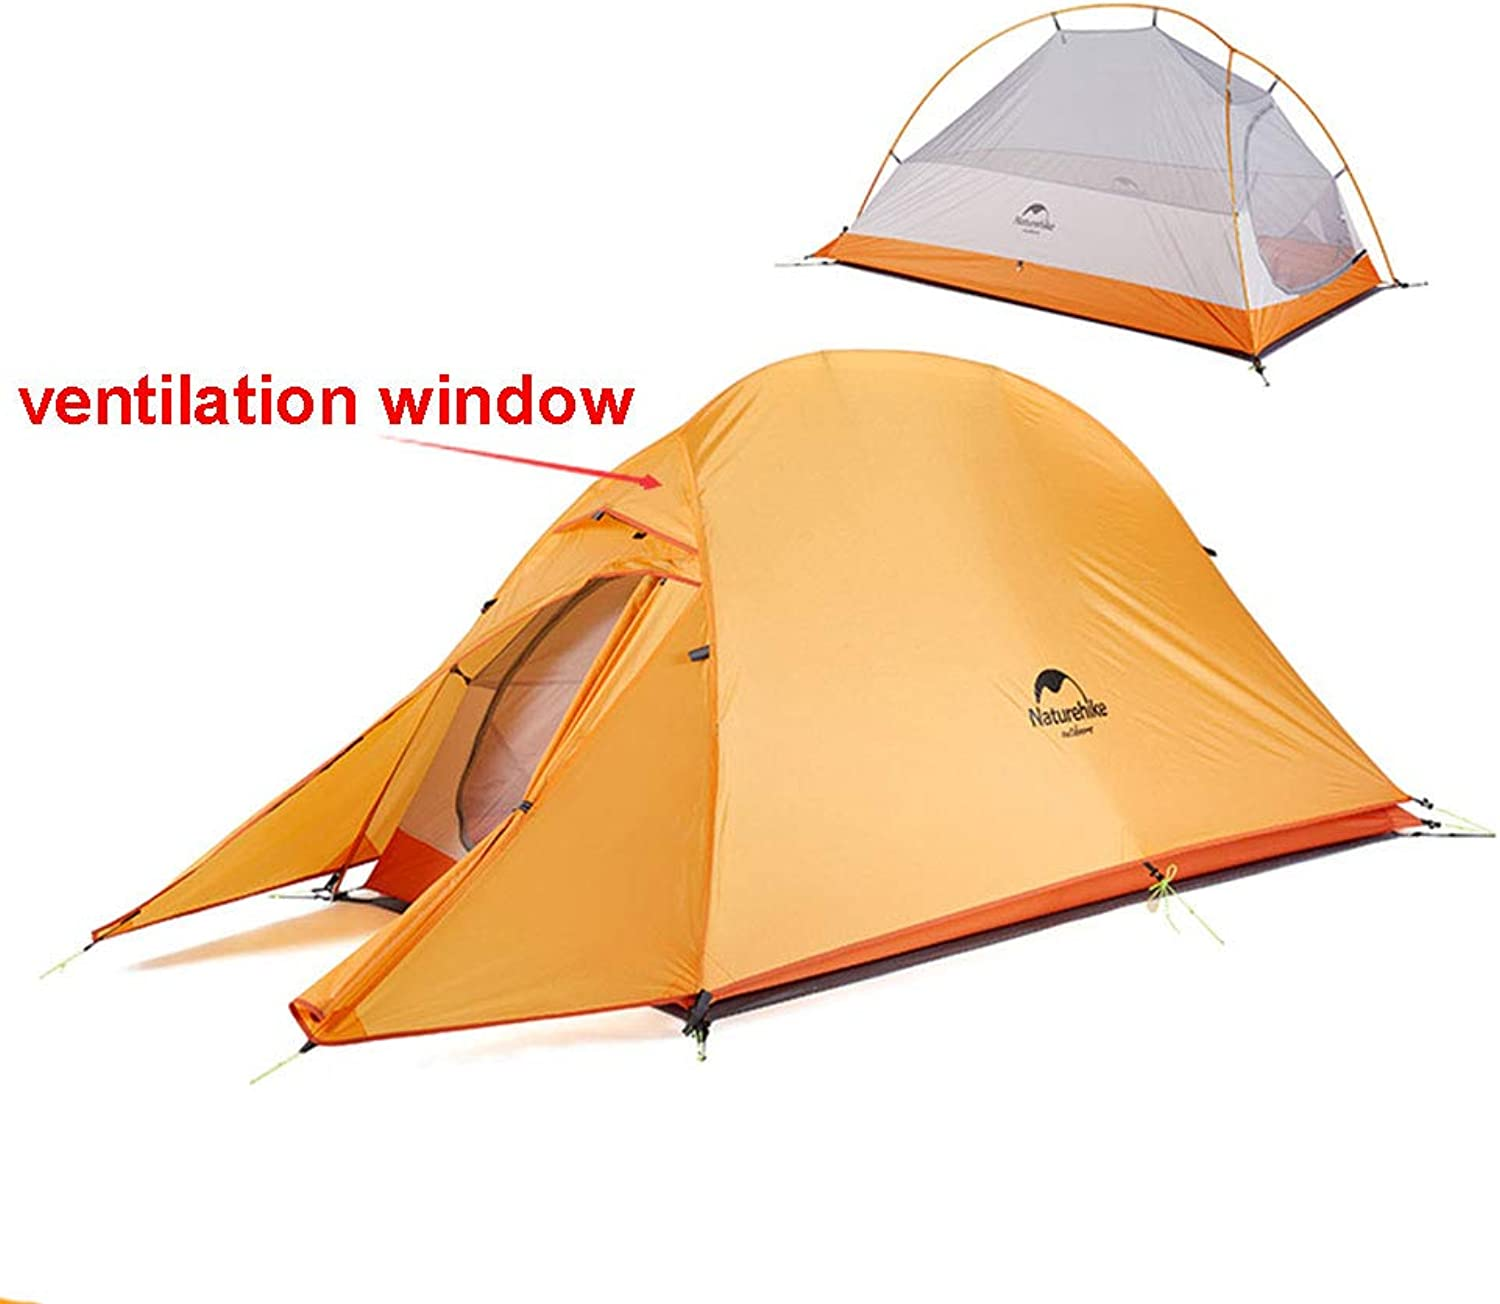 Cloud up Series Tent Updated Version, Waterproof Backpacking Tent Double Layer Ultralight Camping Tent for 1-3 Person